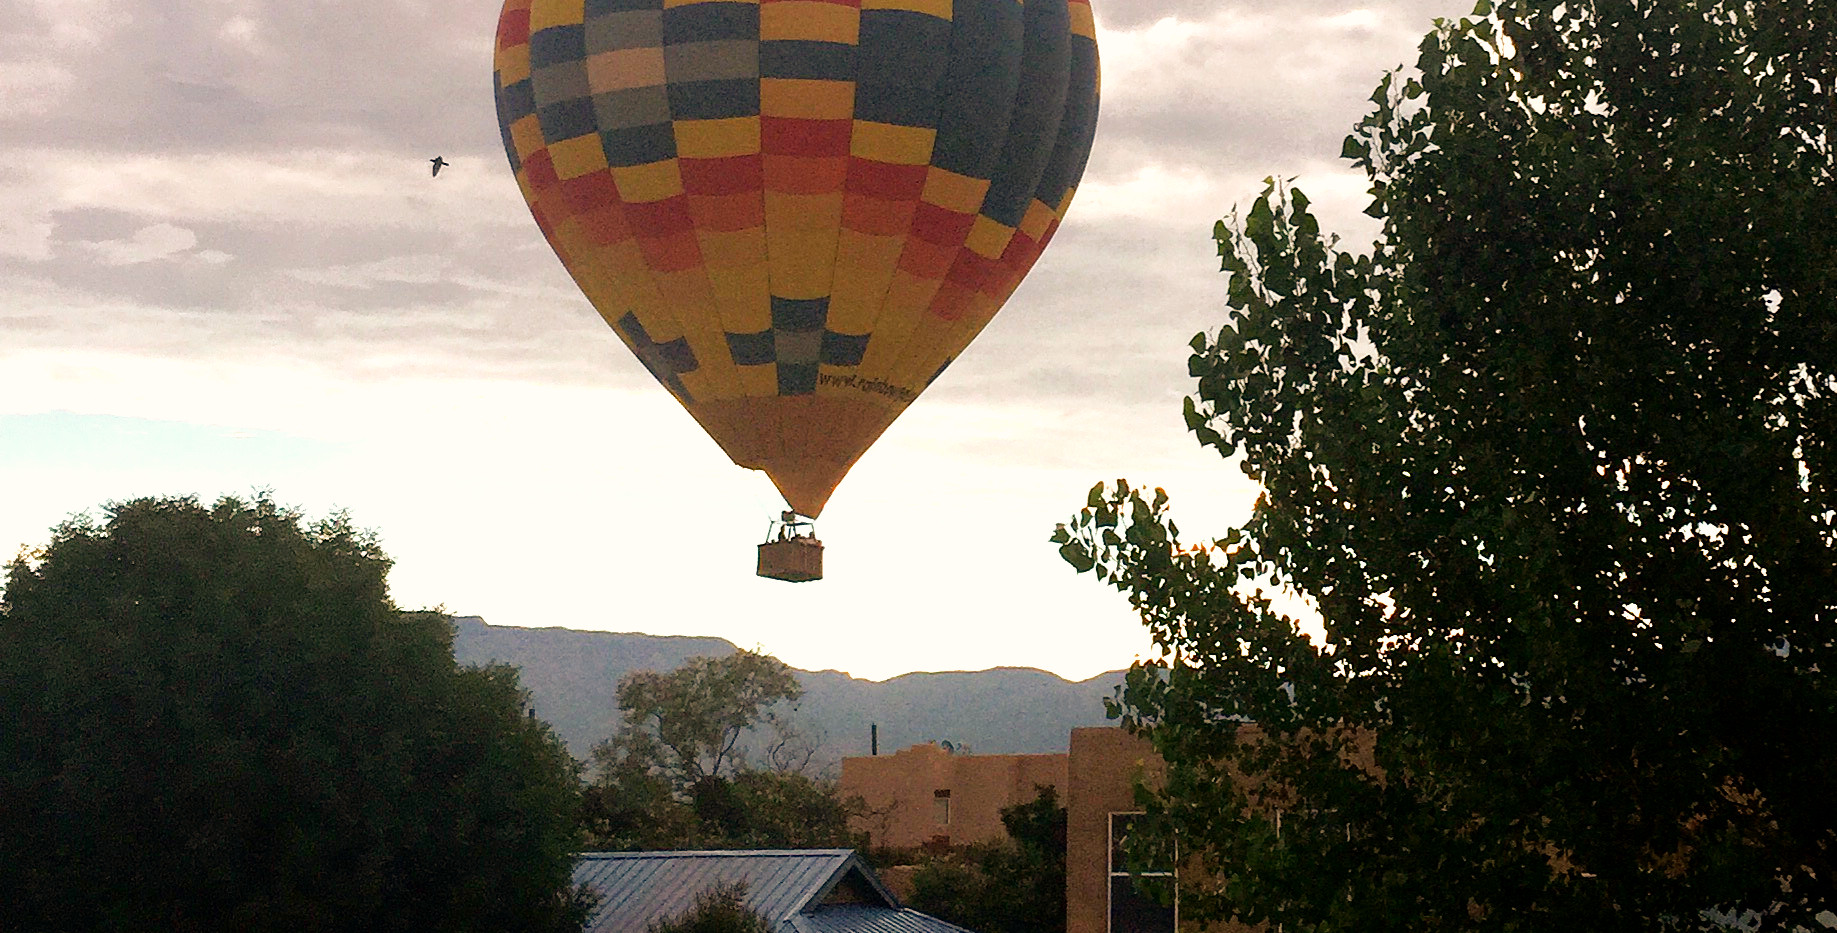 Balloon flying by the house